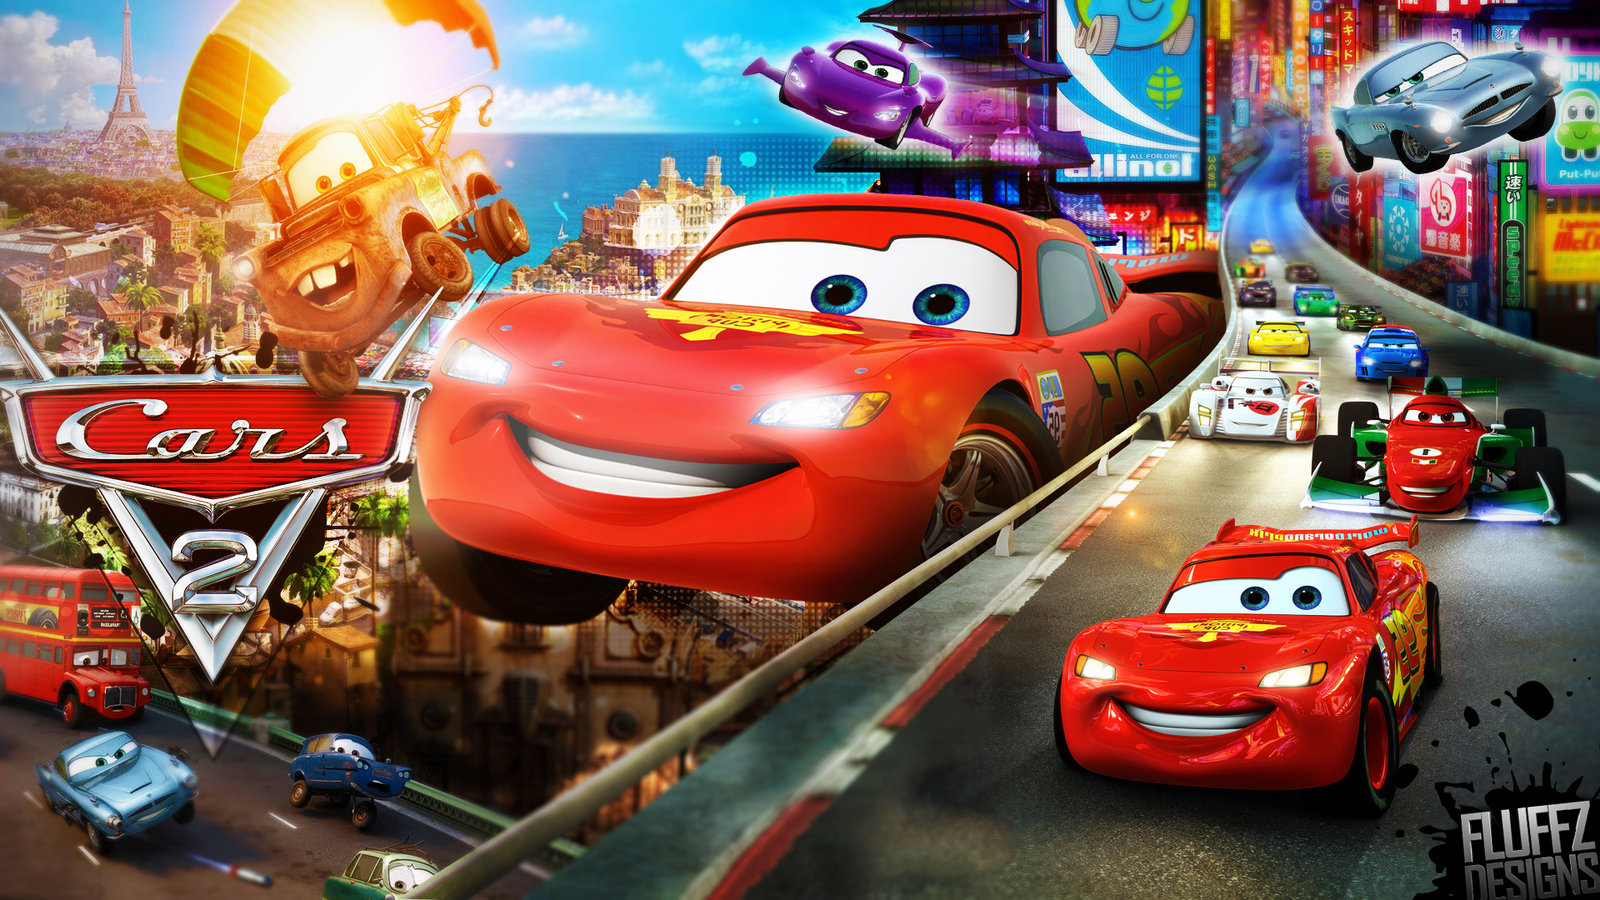 Image disney s cars 2 wallpaper by fluffydesignshd - Cars 3 wallpaper ...